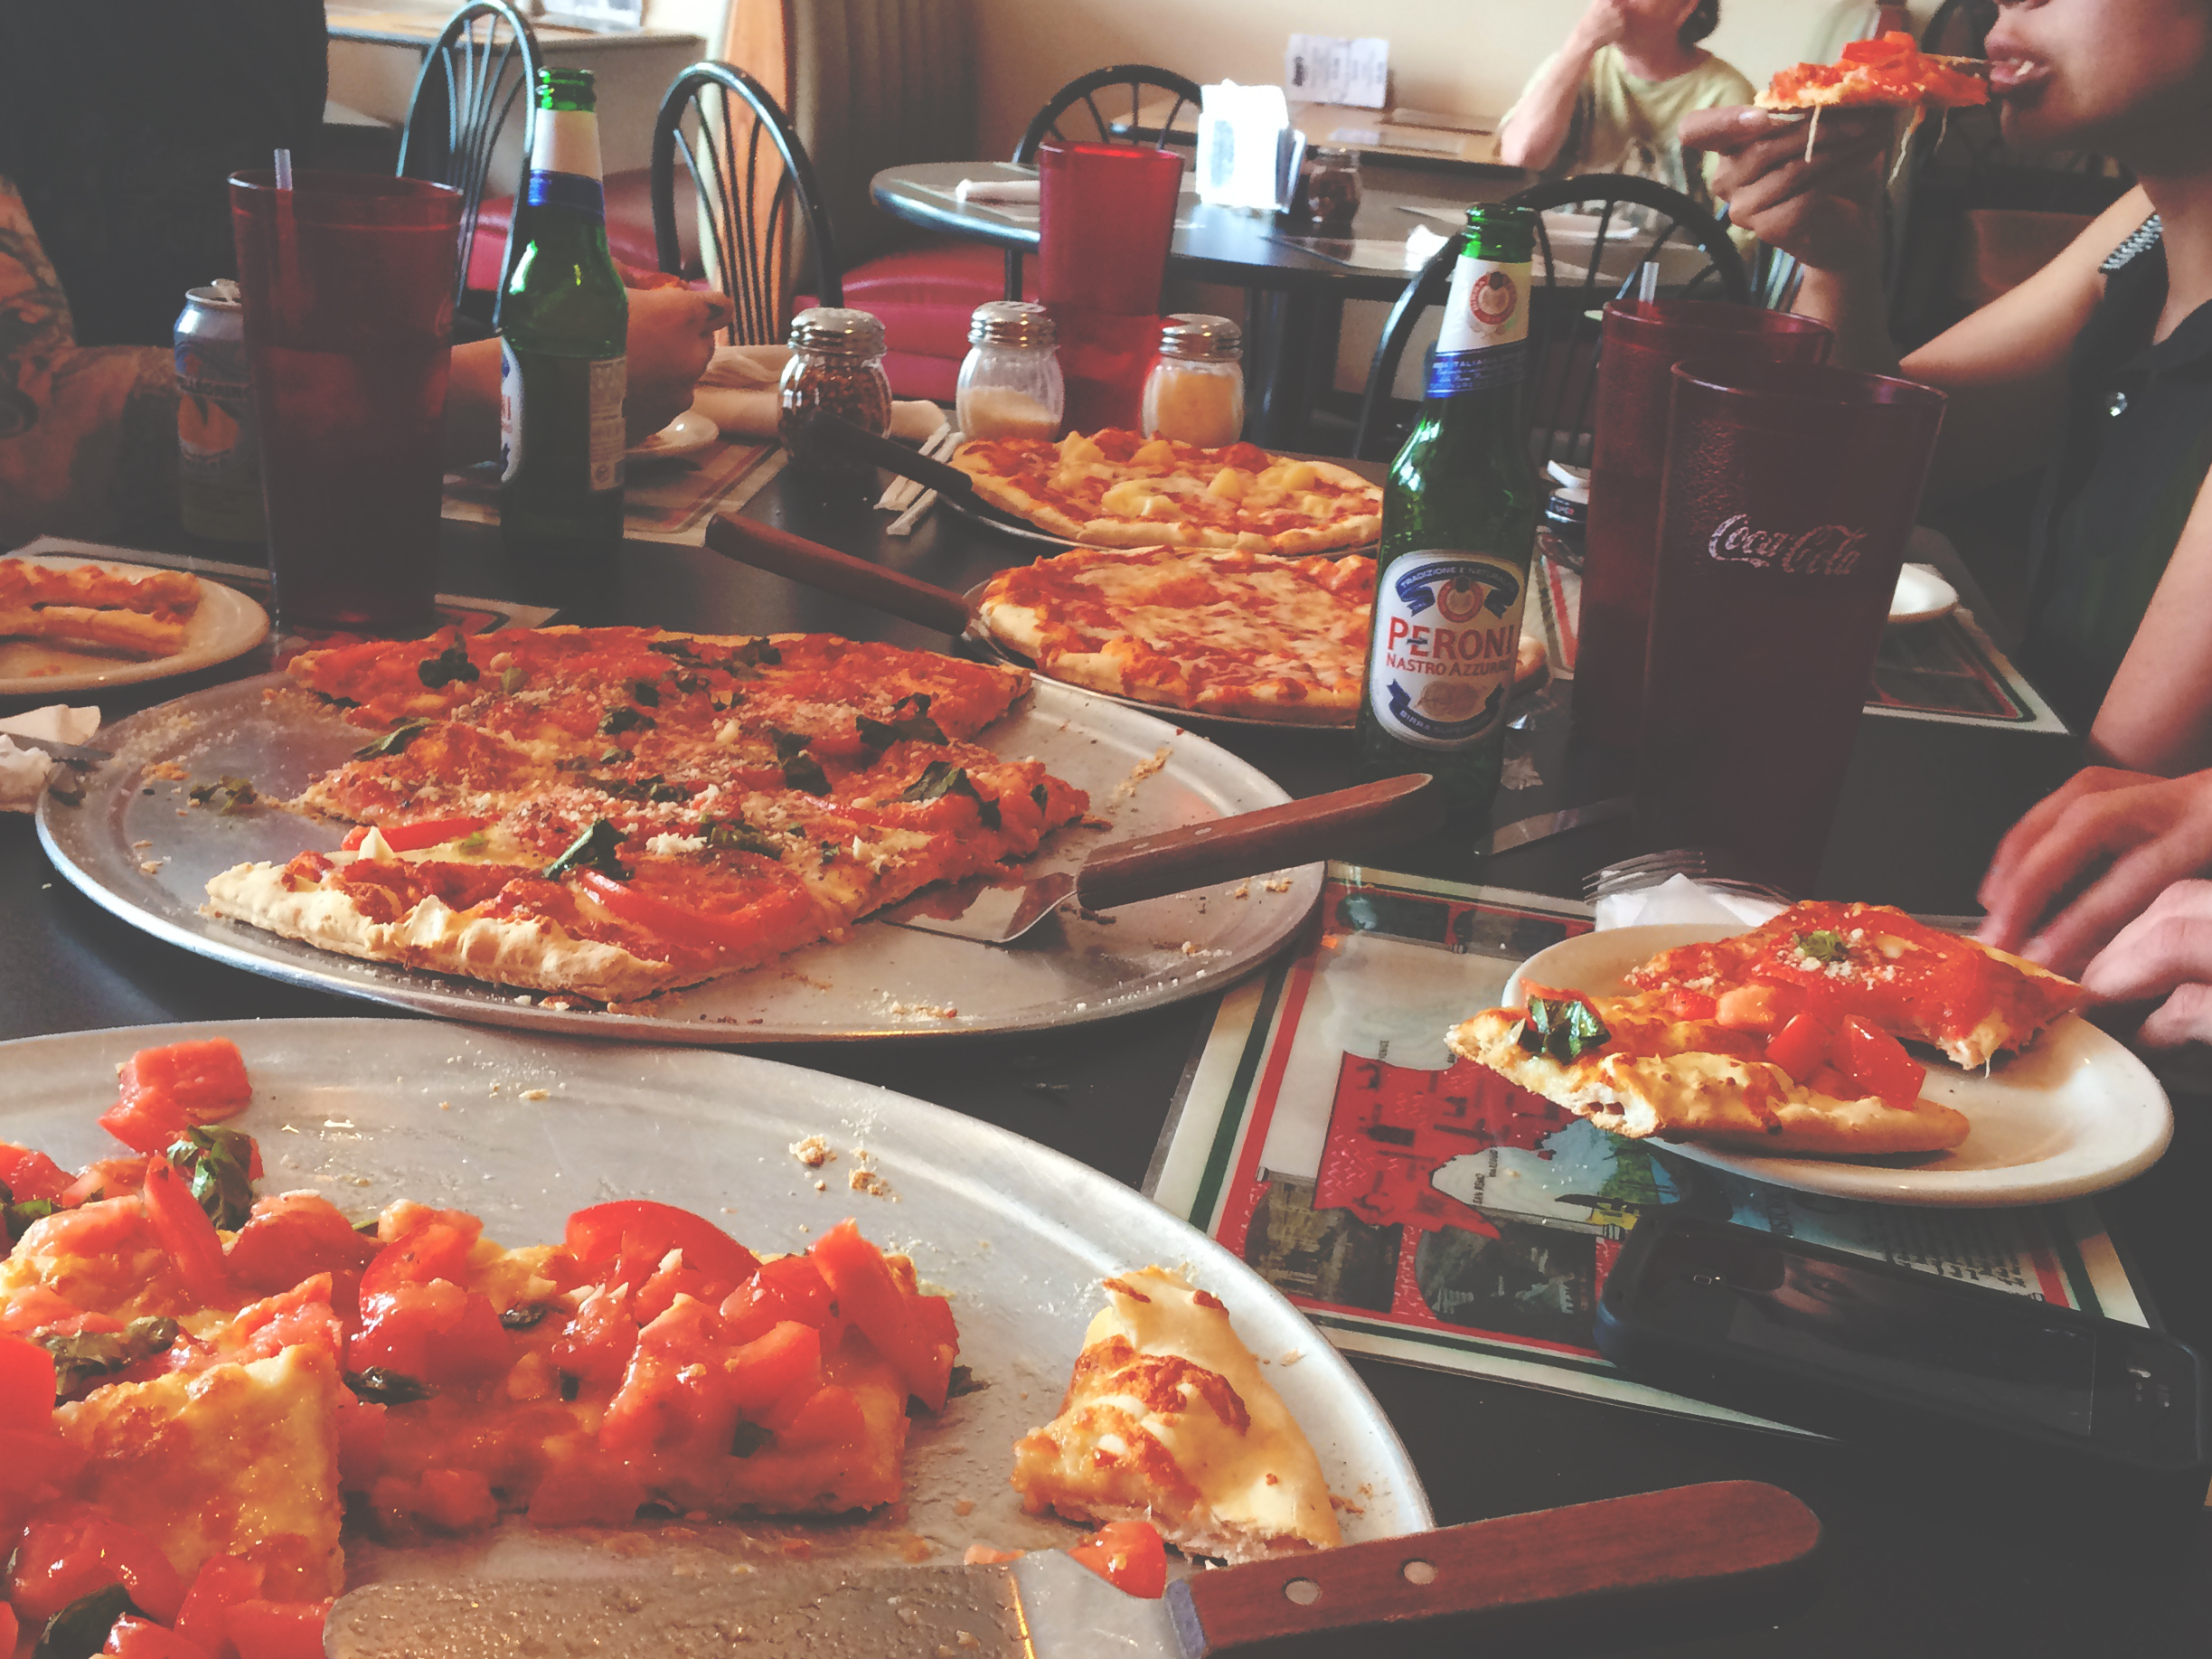 3. Gianni's Pizza is some of the best pizza in the world